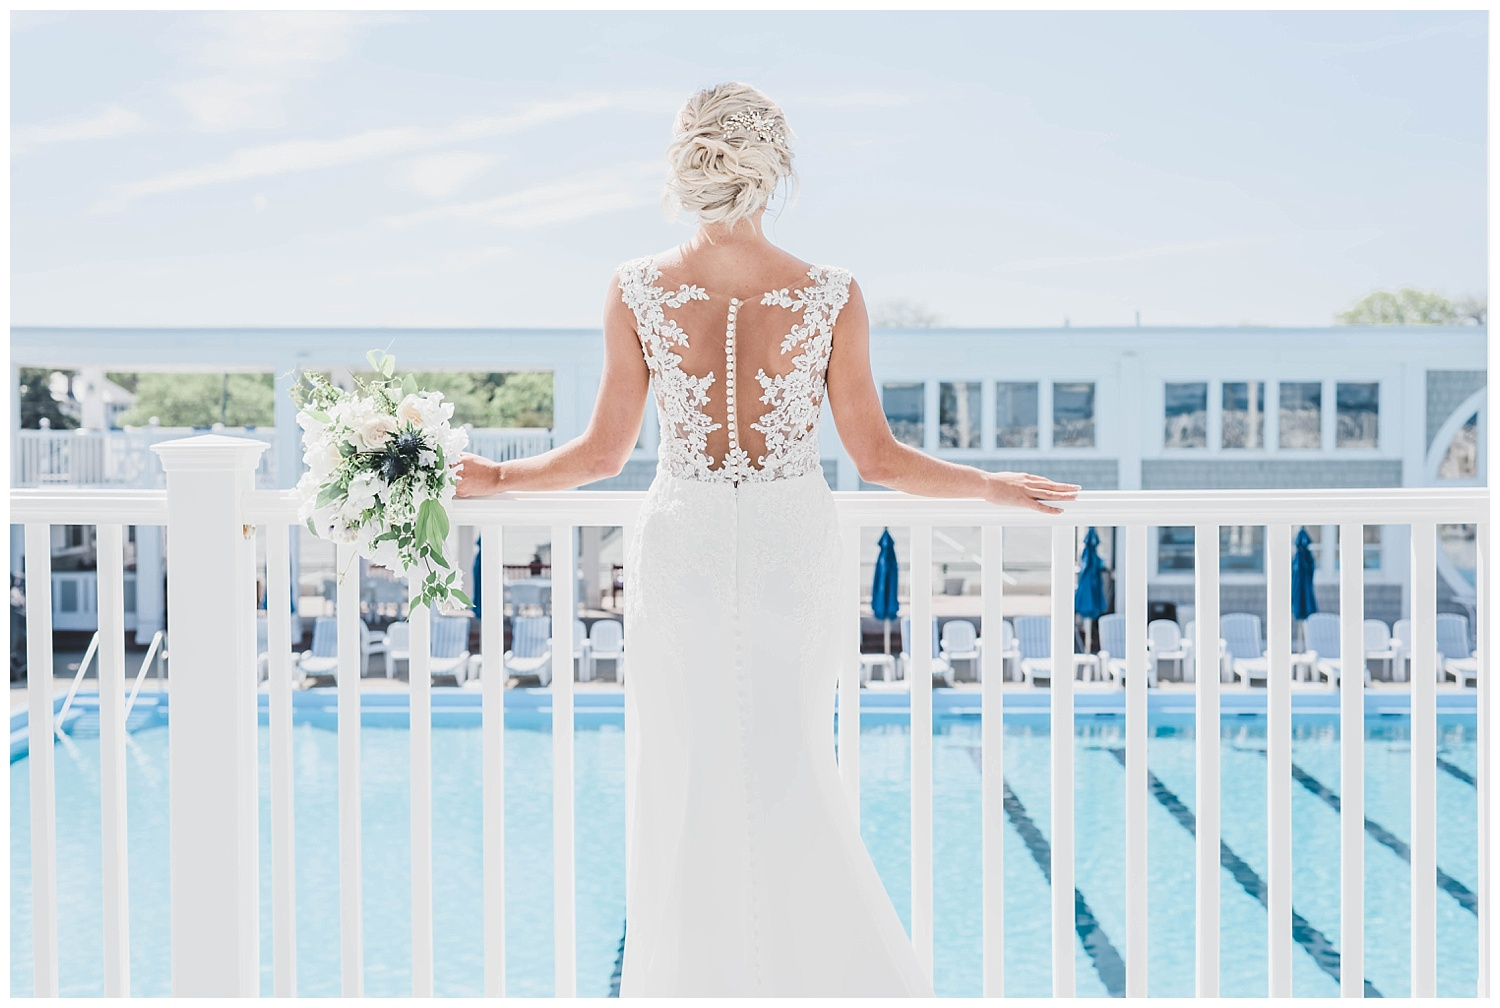 Spring Lake Wedding Inspiration | Spring Lake Bath and Tennis Club | Spring Lake, NJ | www.redoakweddings.com